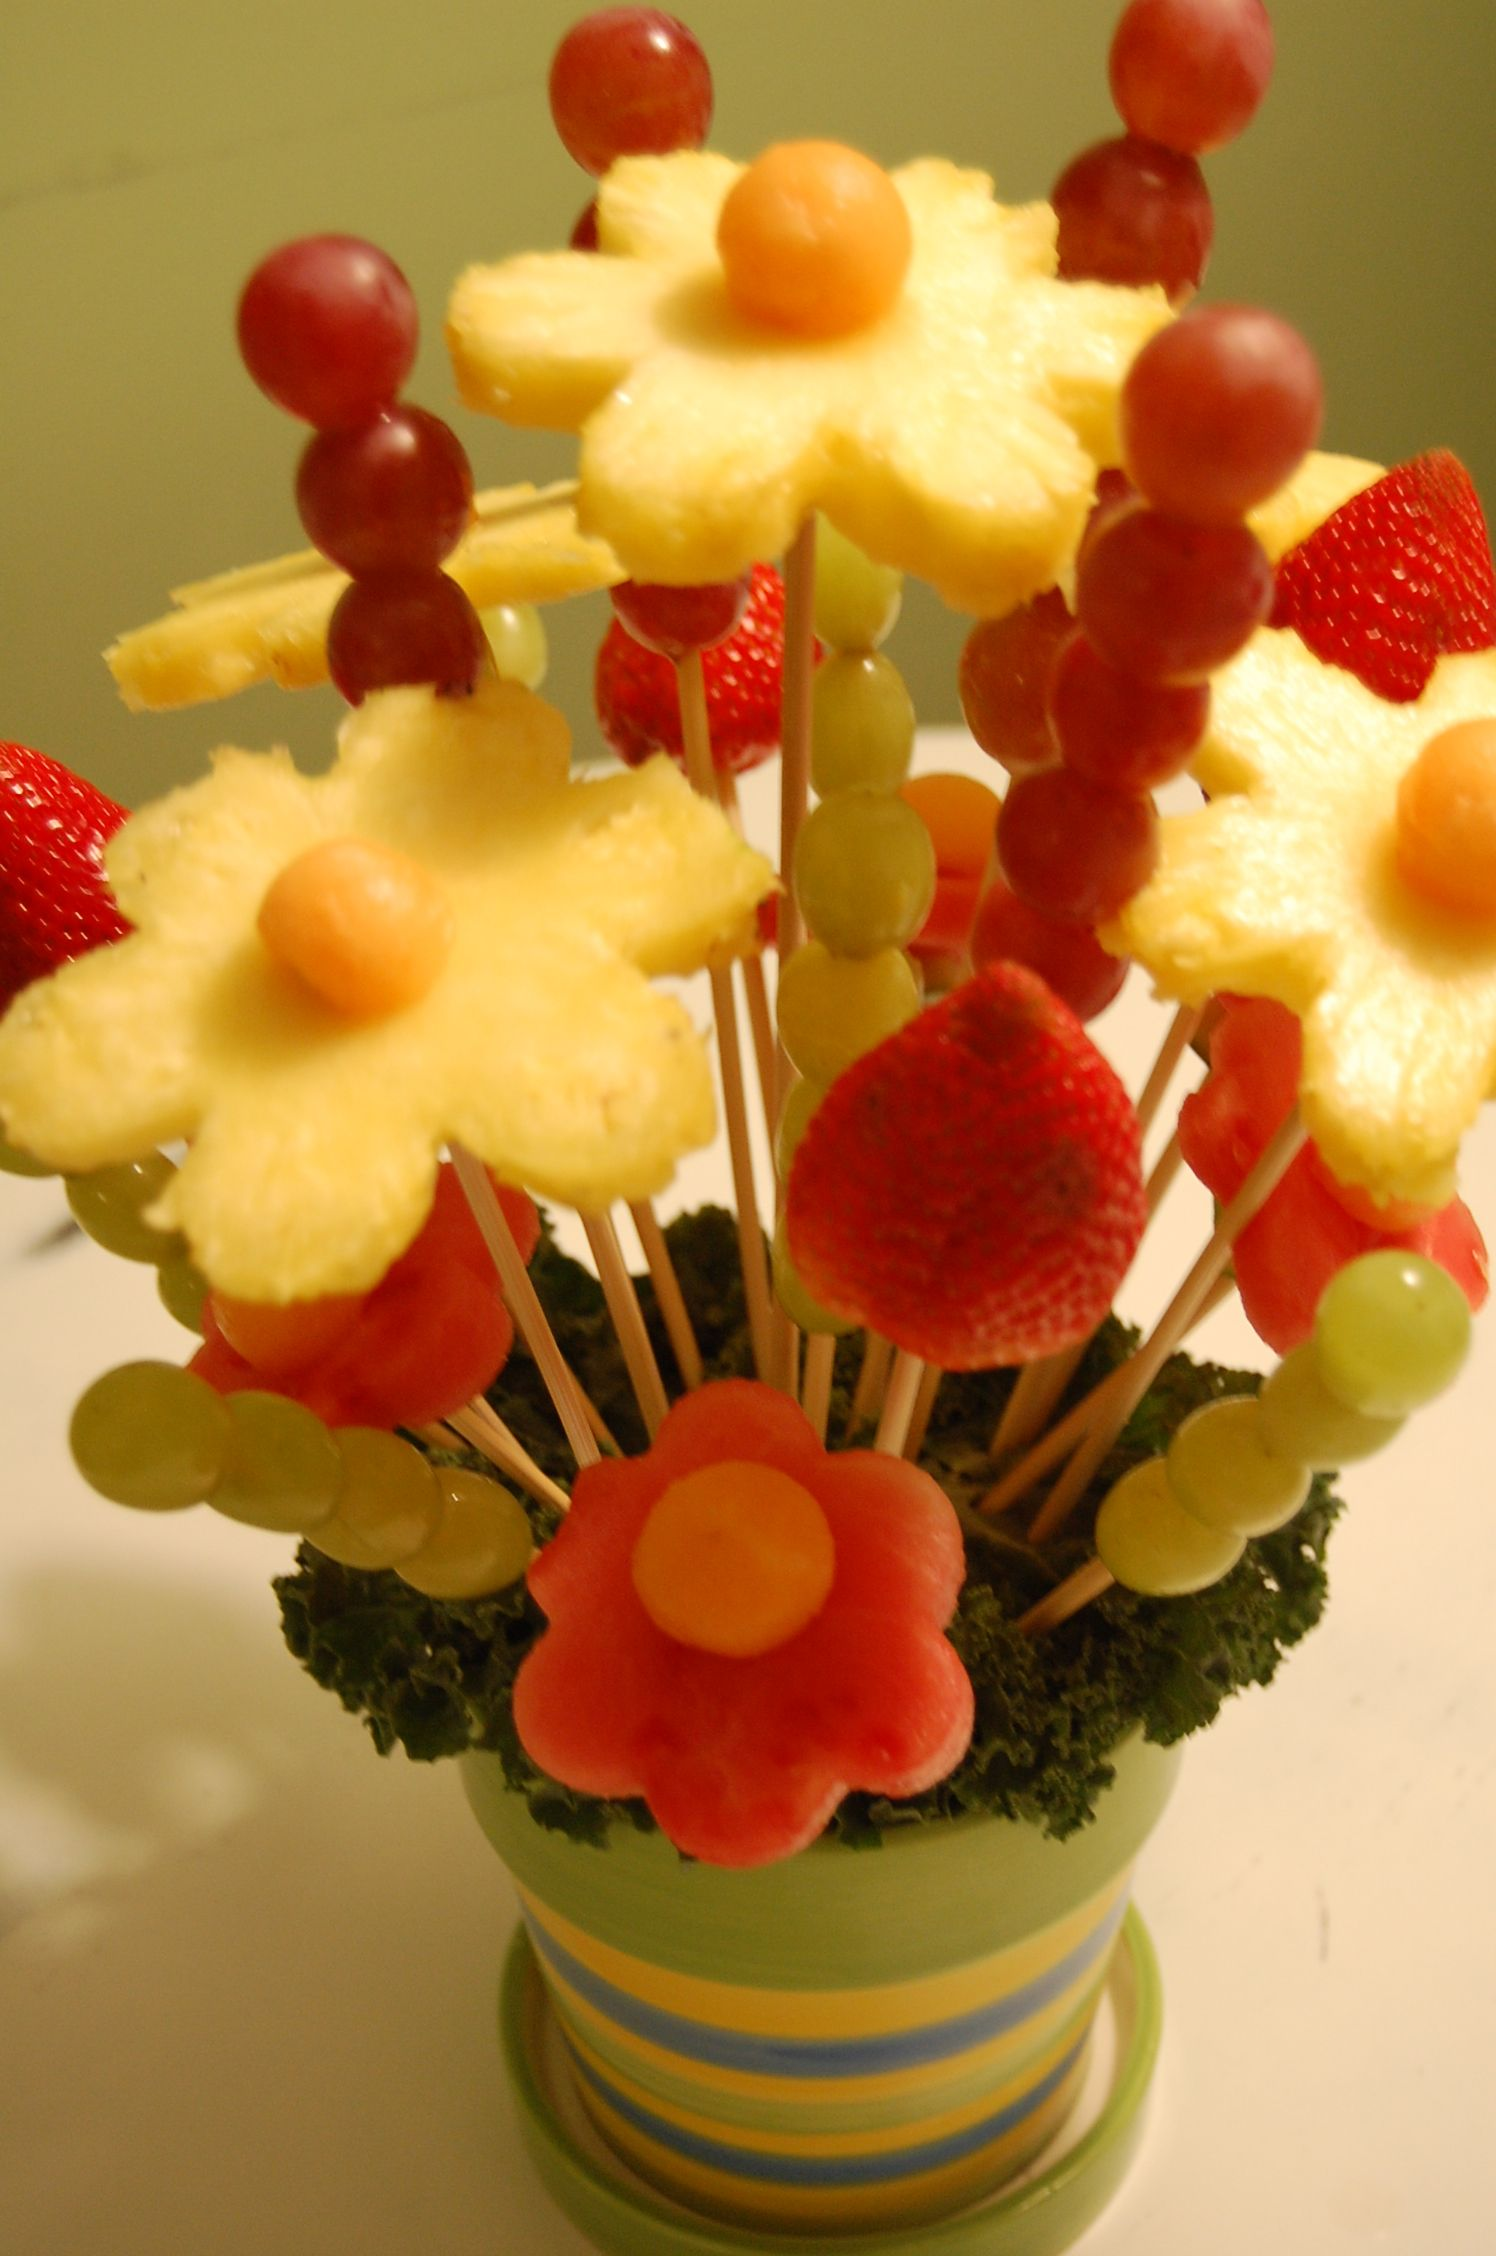 Edible Fruit Arrangement Recipe Lettuce Leaves Edible: floral arrangements with fruit